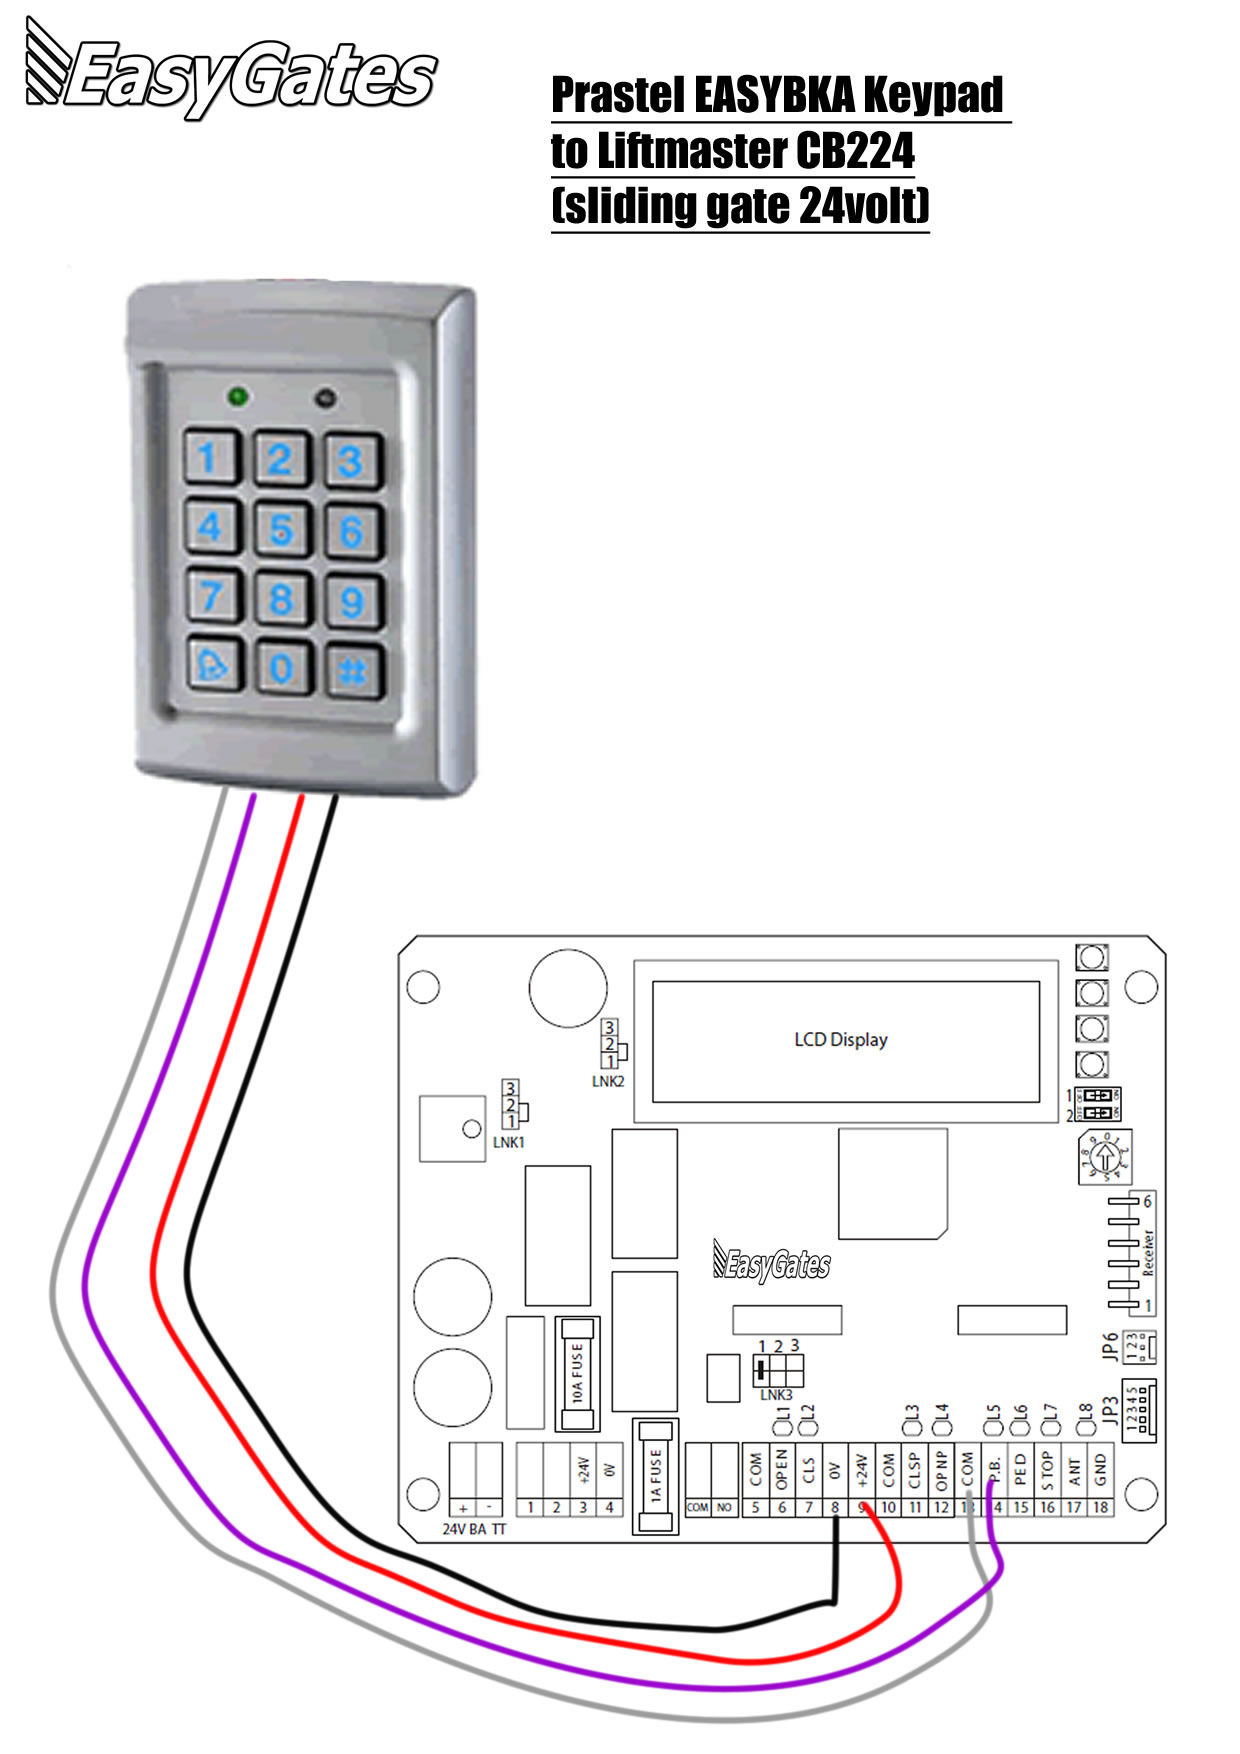 Wiring Diagram For Centurion Keypad : How to wire easyka keypad cb control